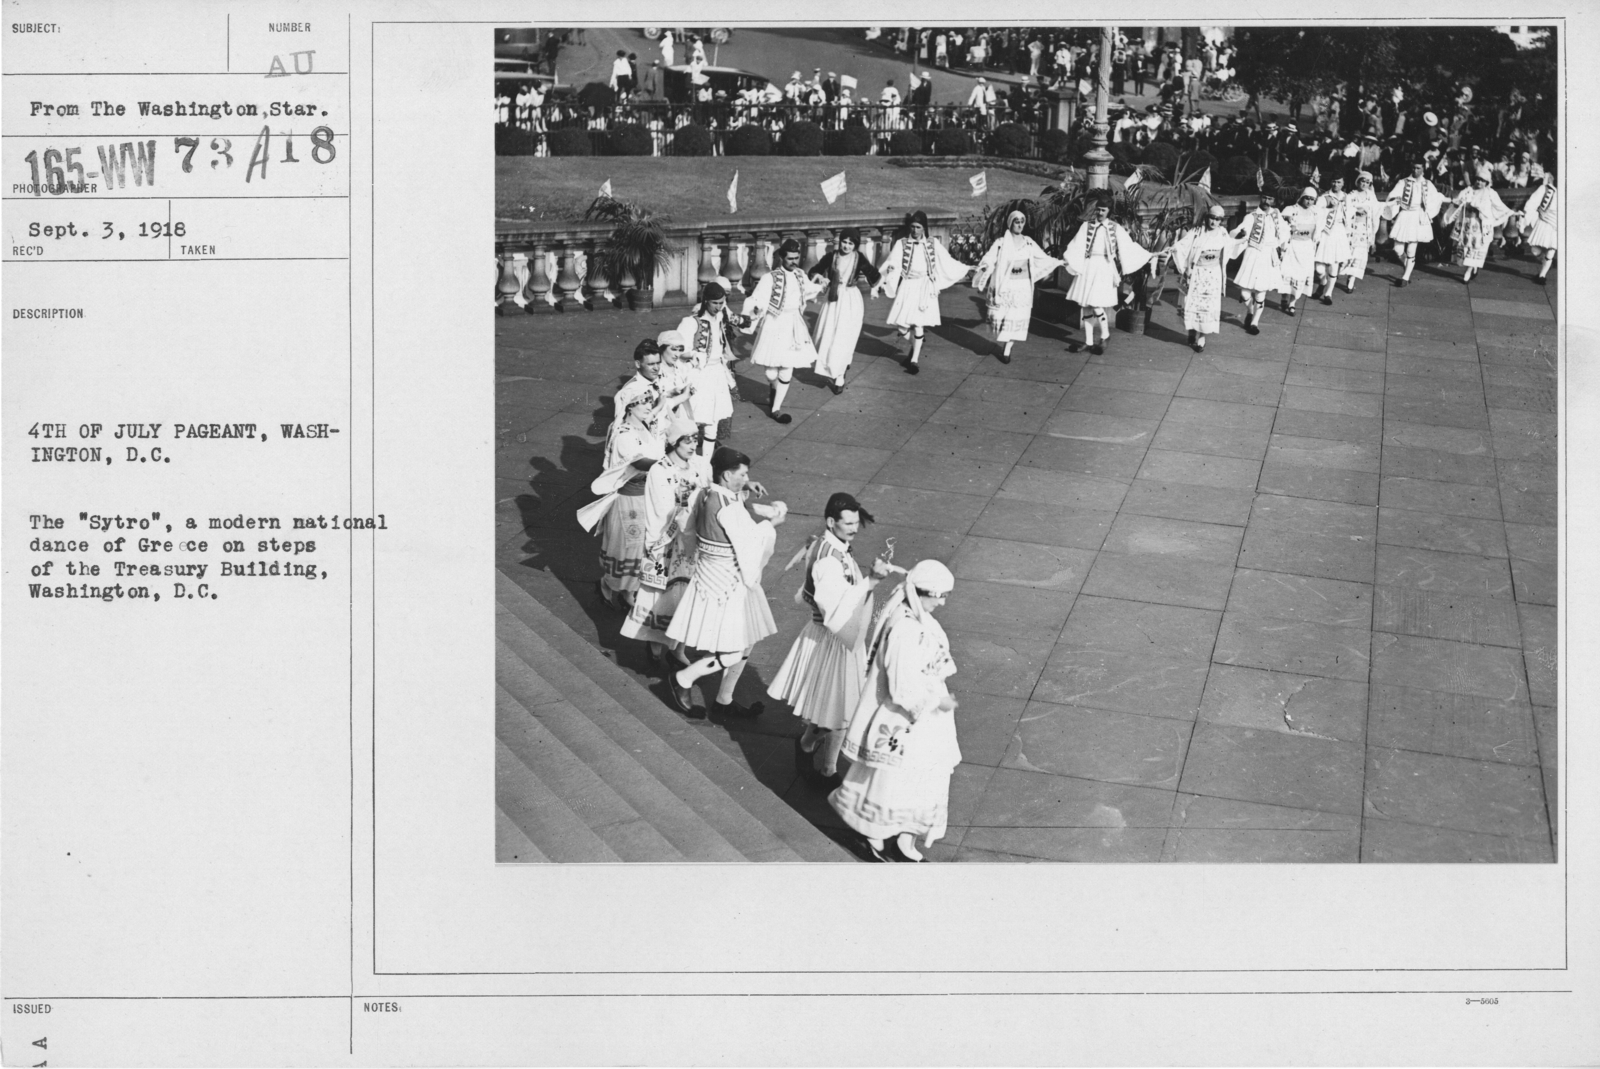 """Ceremonies - Independence Day, 1918 - Amer. Misc. - 4th of July Pageant, Washington, D.C. The """"Sytro"""", a modern national dance of Greece on steps of the Treasury Building, Washington, D.C"""